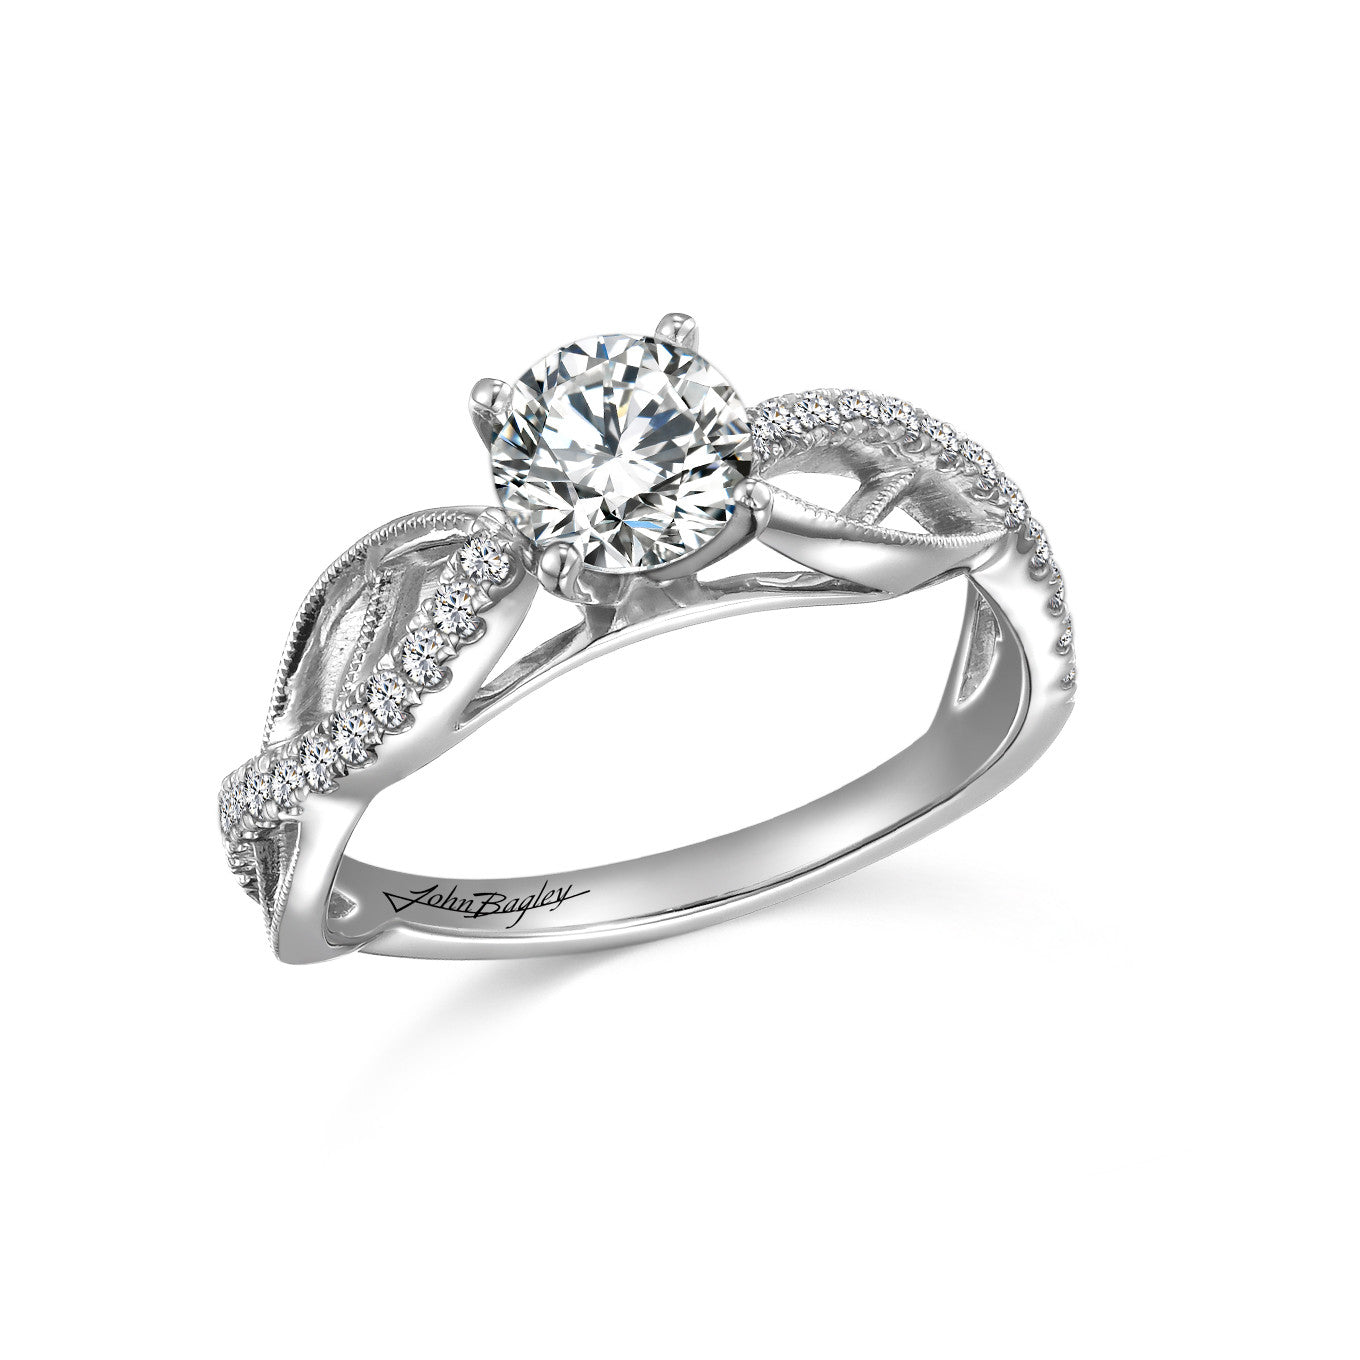 Multi-Row Diamond Engagement Ring